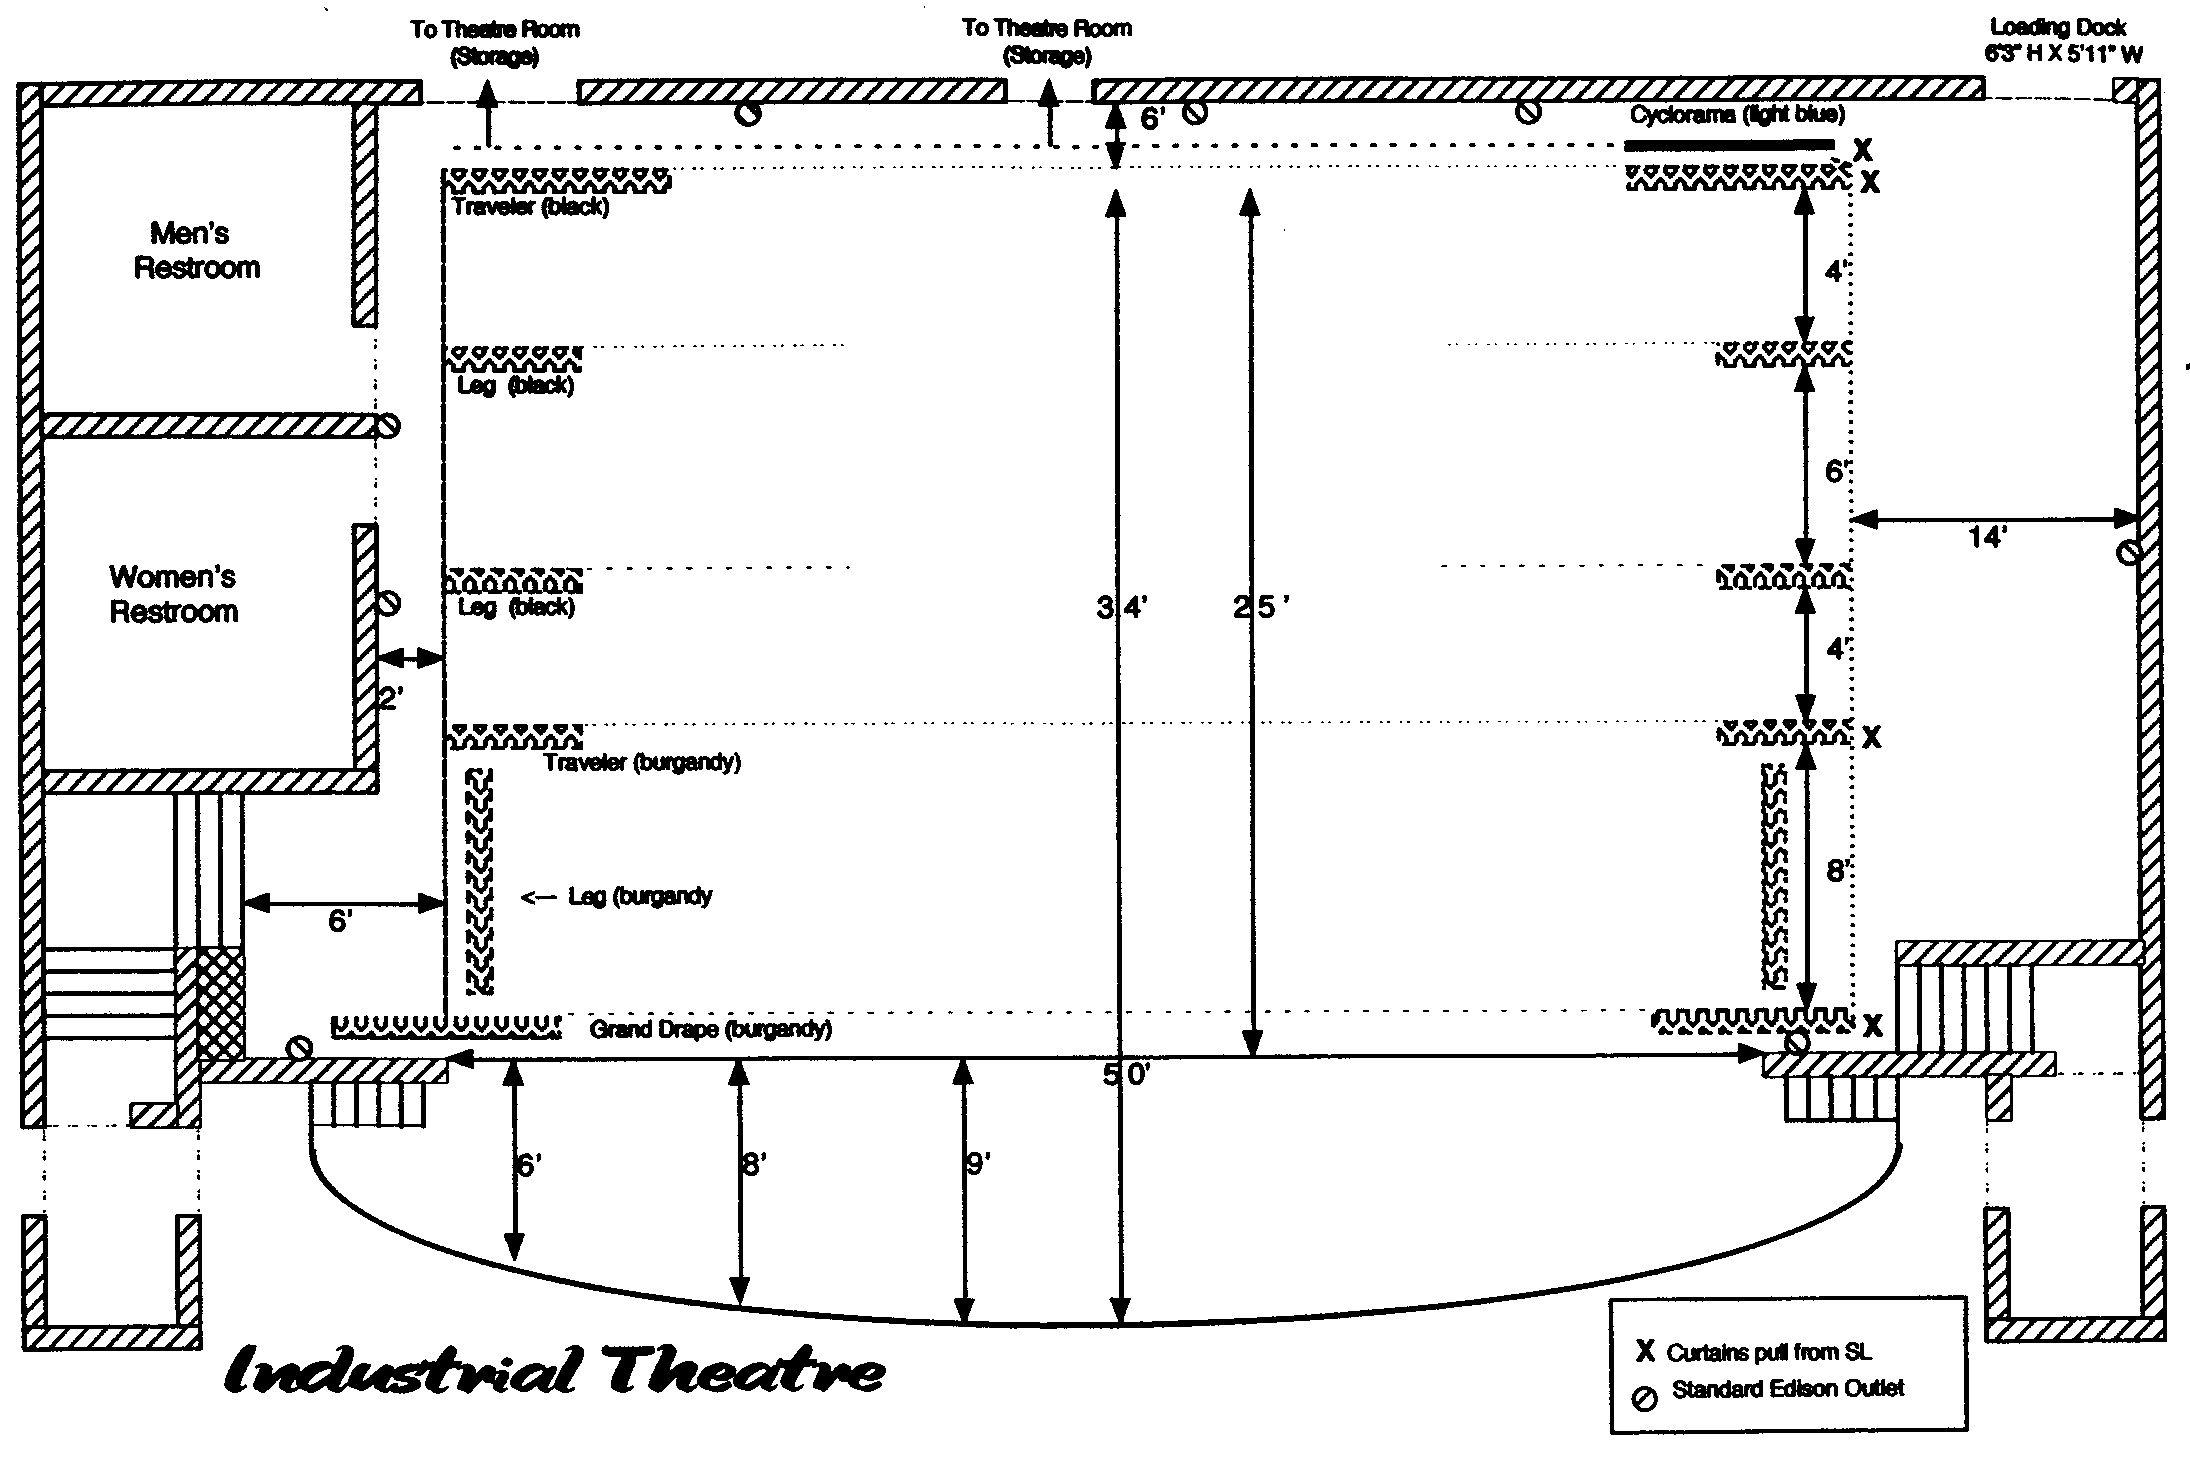 Stage diagram 2005 jpg 2190 1476 sample template for for Stage plot template